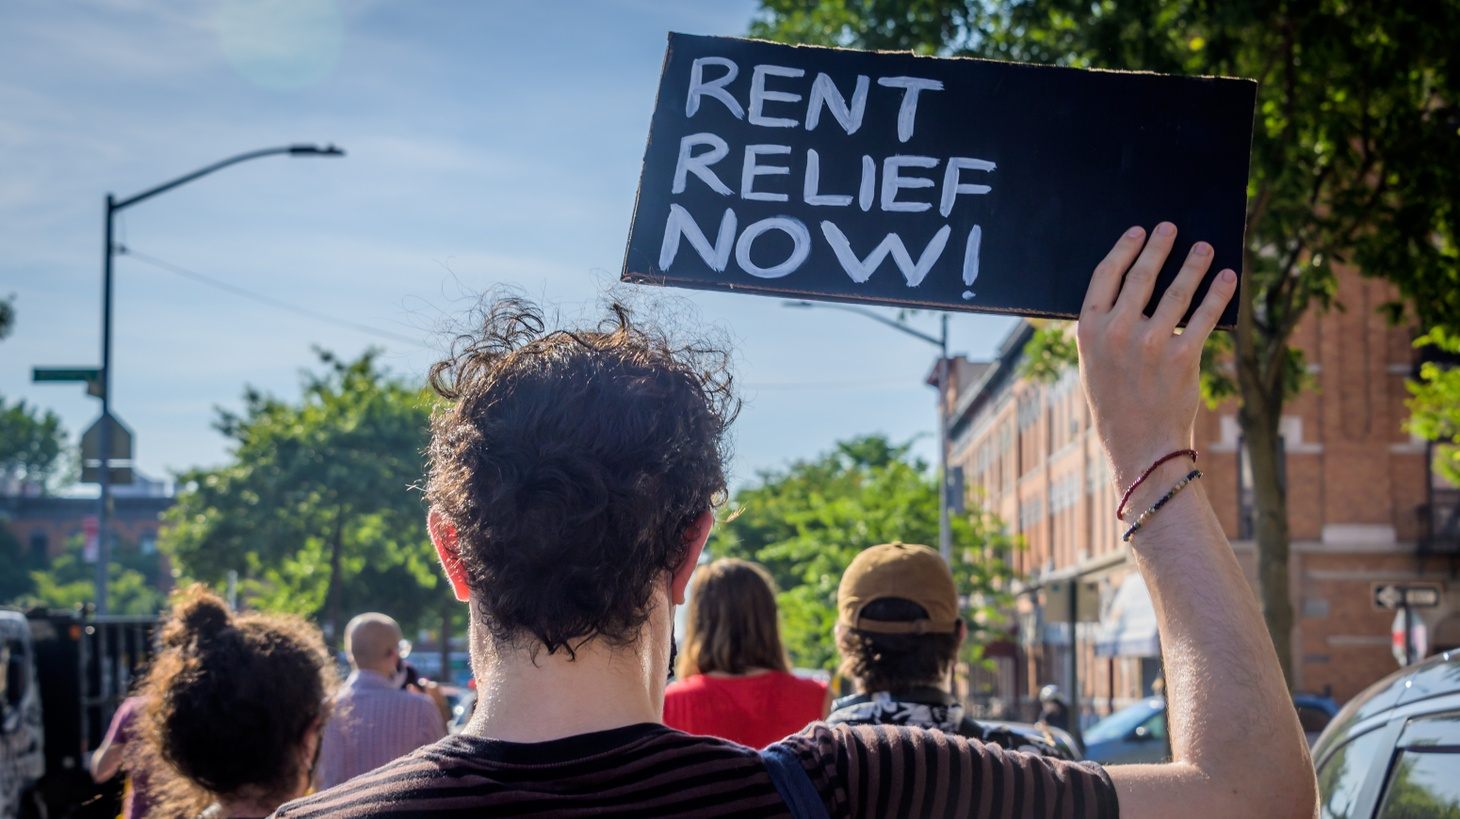 Many Angelenos have lost work during the COVID-19 pandemic, and they're struggling to pay rent. There's a temporary moratorium on evictions, and a new rent relief program. But housing experts say many renters will still be in trouble down the line.